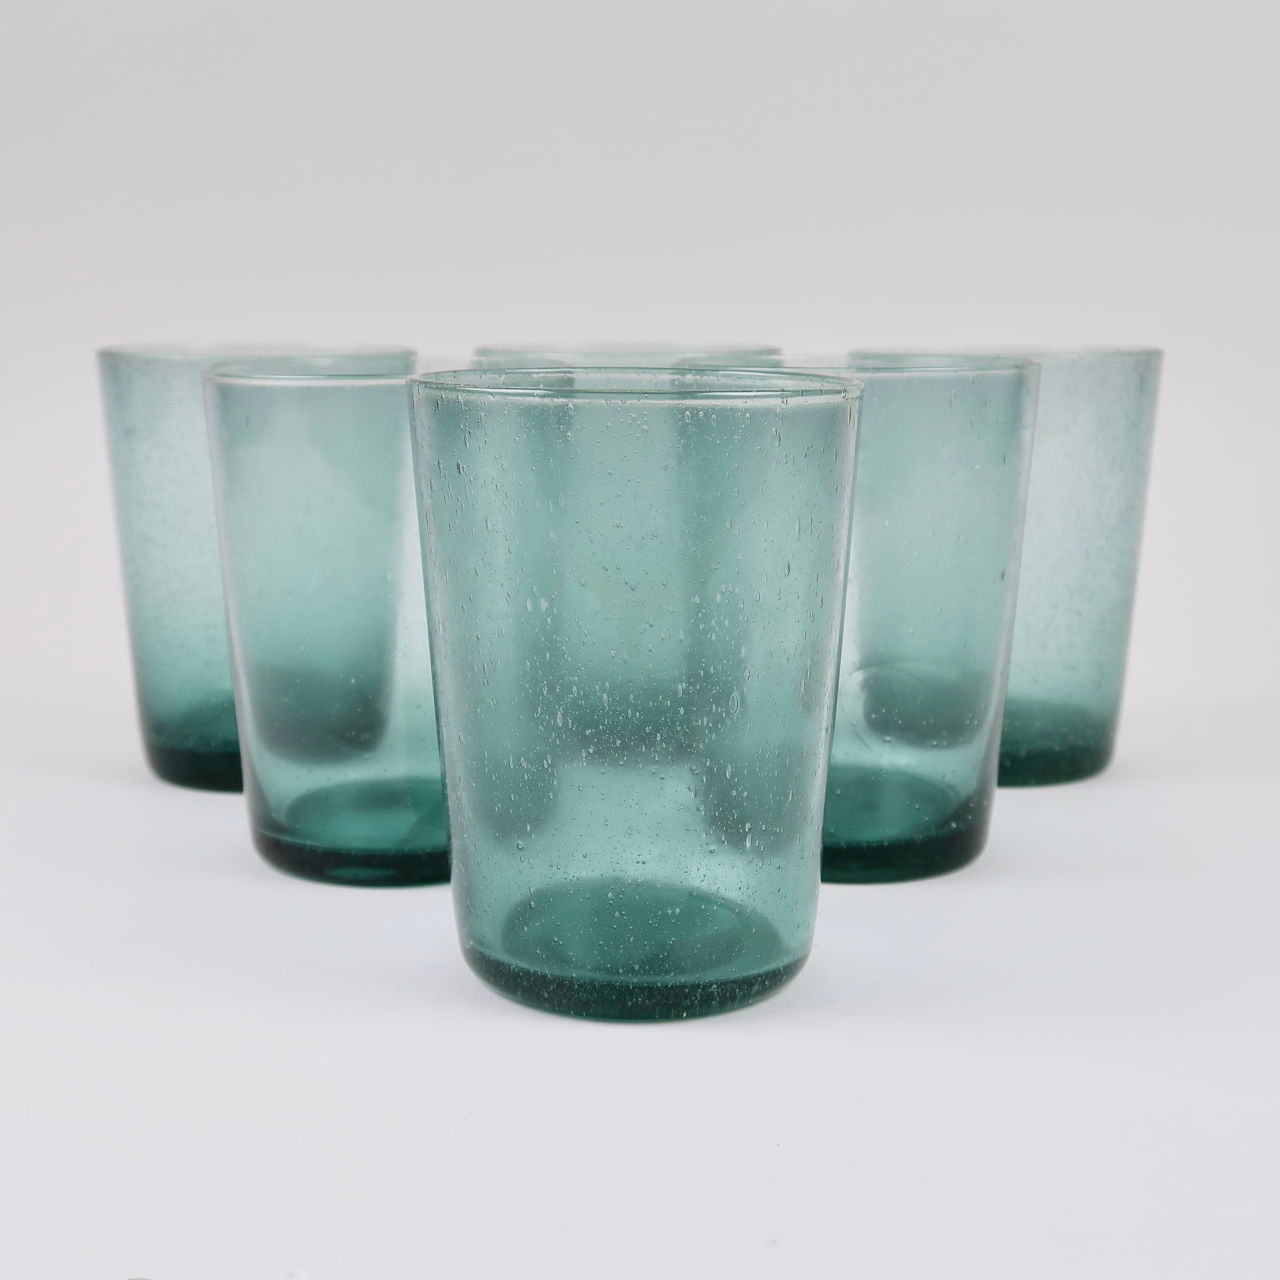 Boxed Set of 6 Recycled Glass Tumblers - Amulet